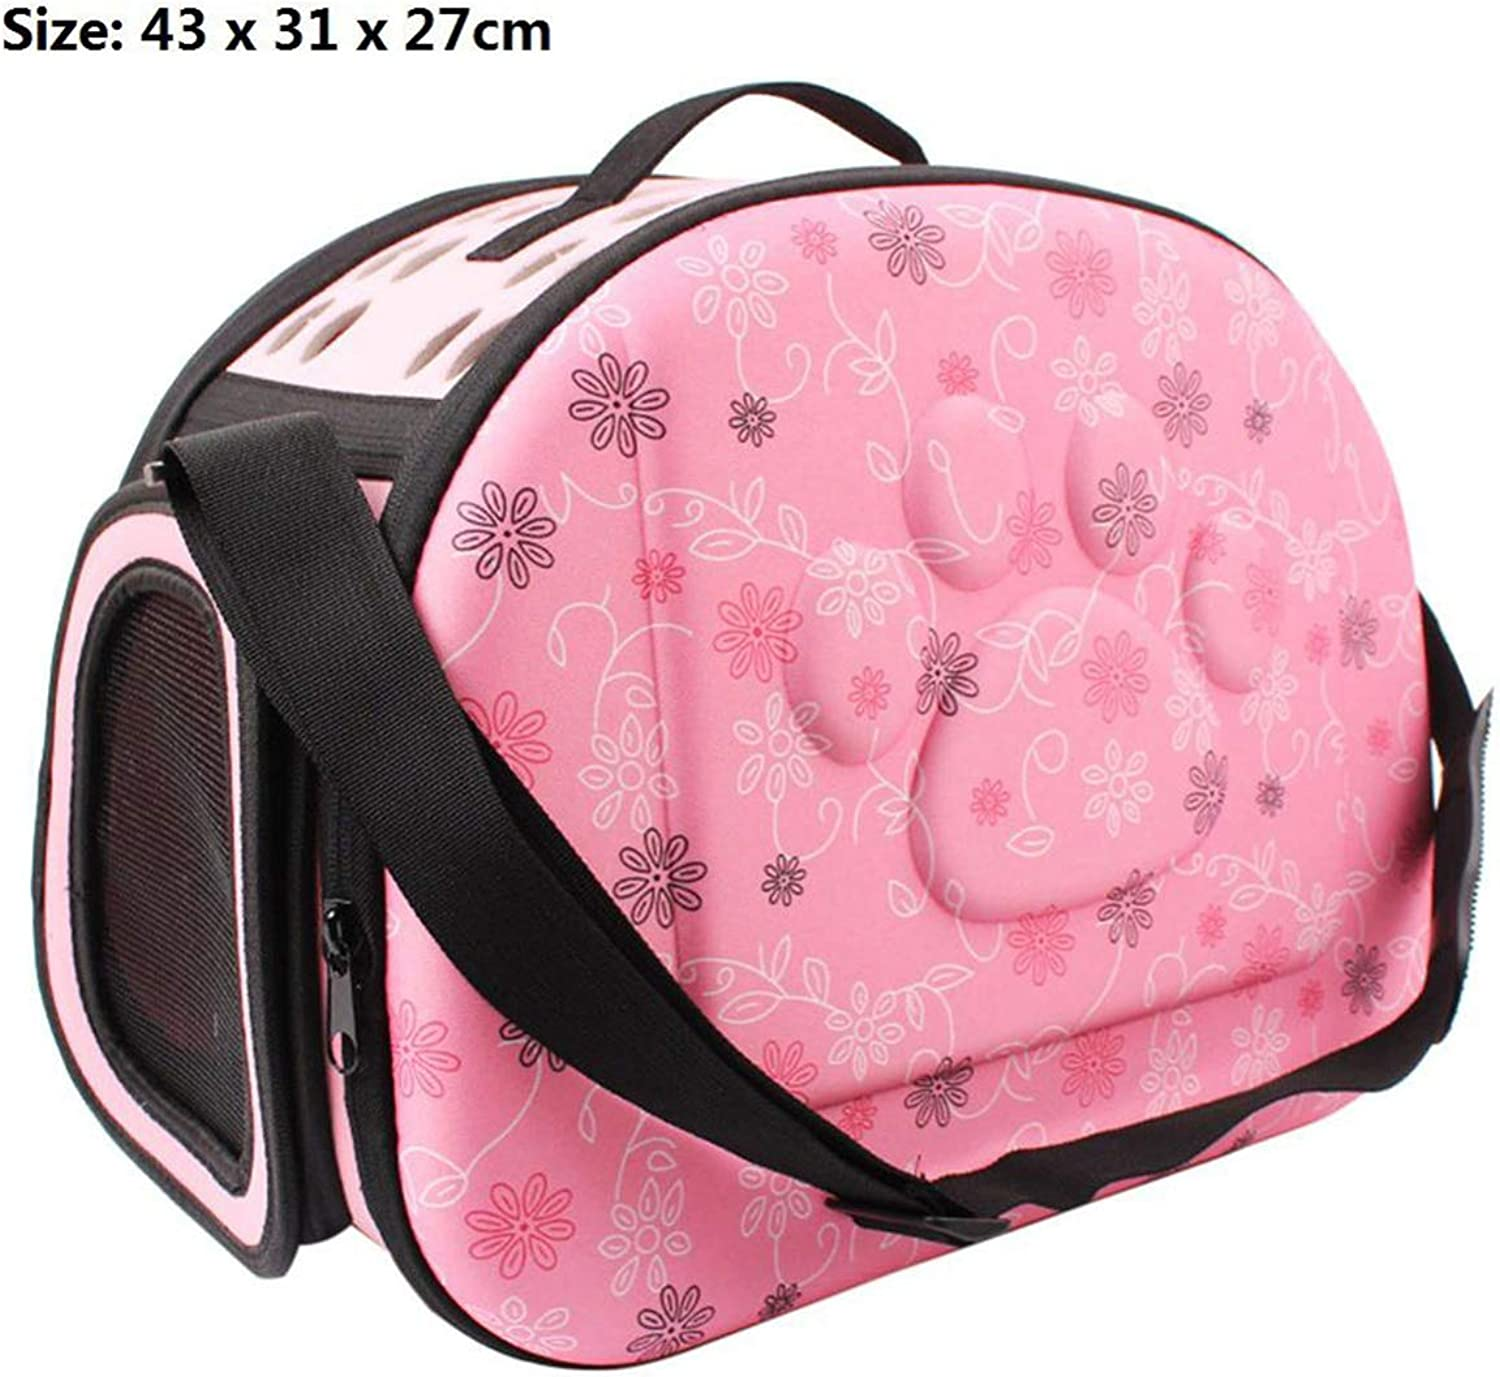 PETFDH Dog Carrier Foldable Outdoor Travel Carrier Bags for Small Dog Puppy Cats Carrying Carrier Animal Pet Supplies 02 M